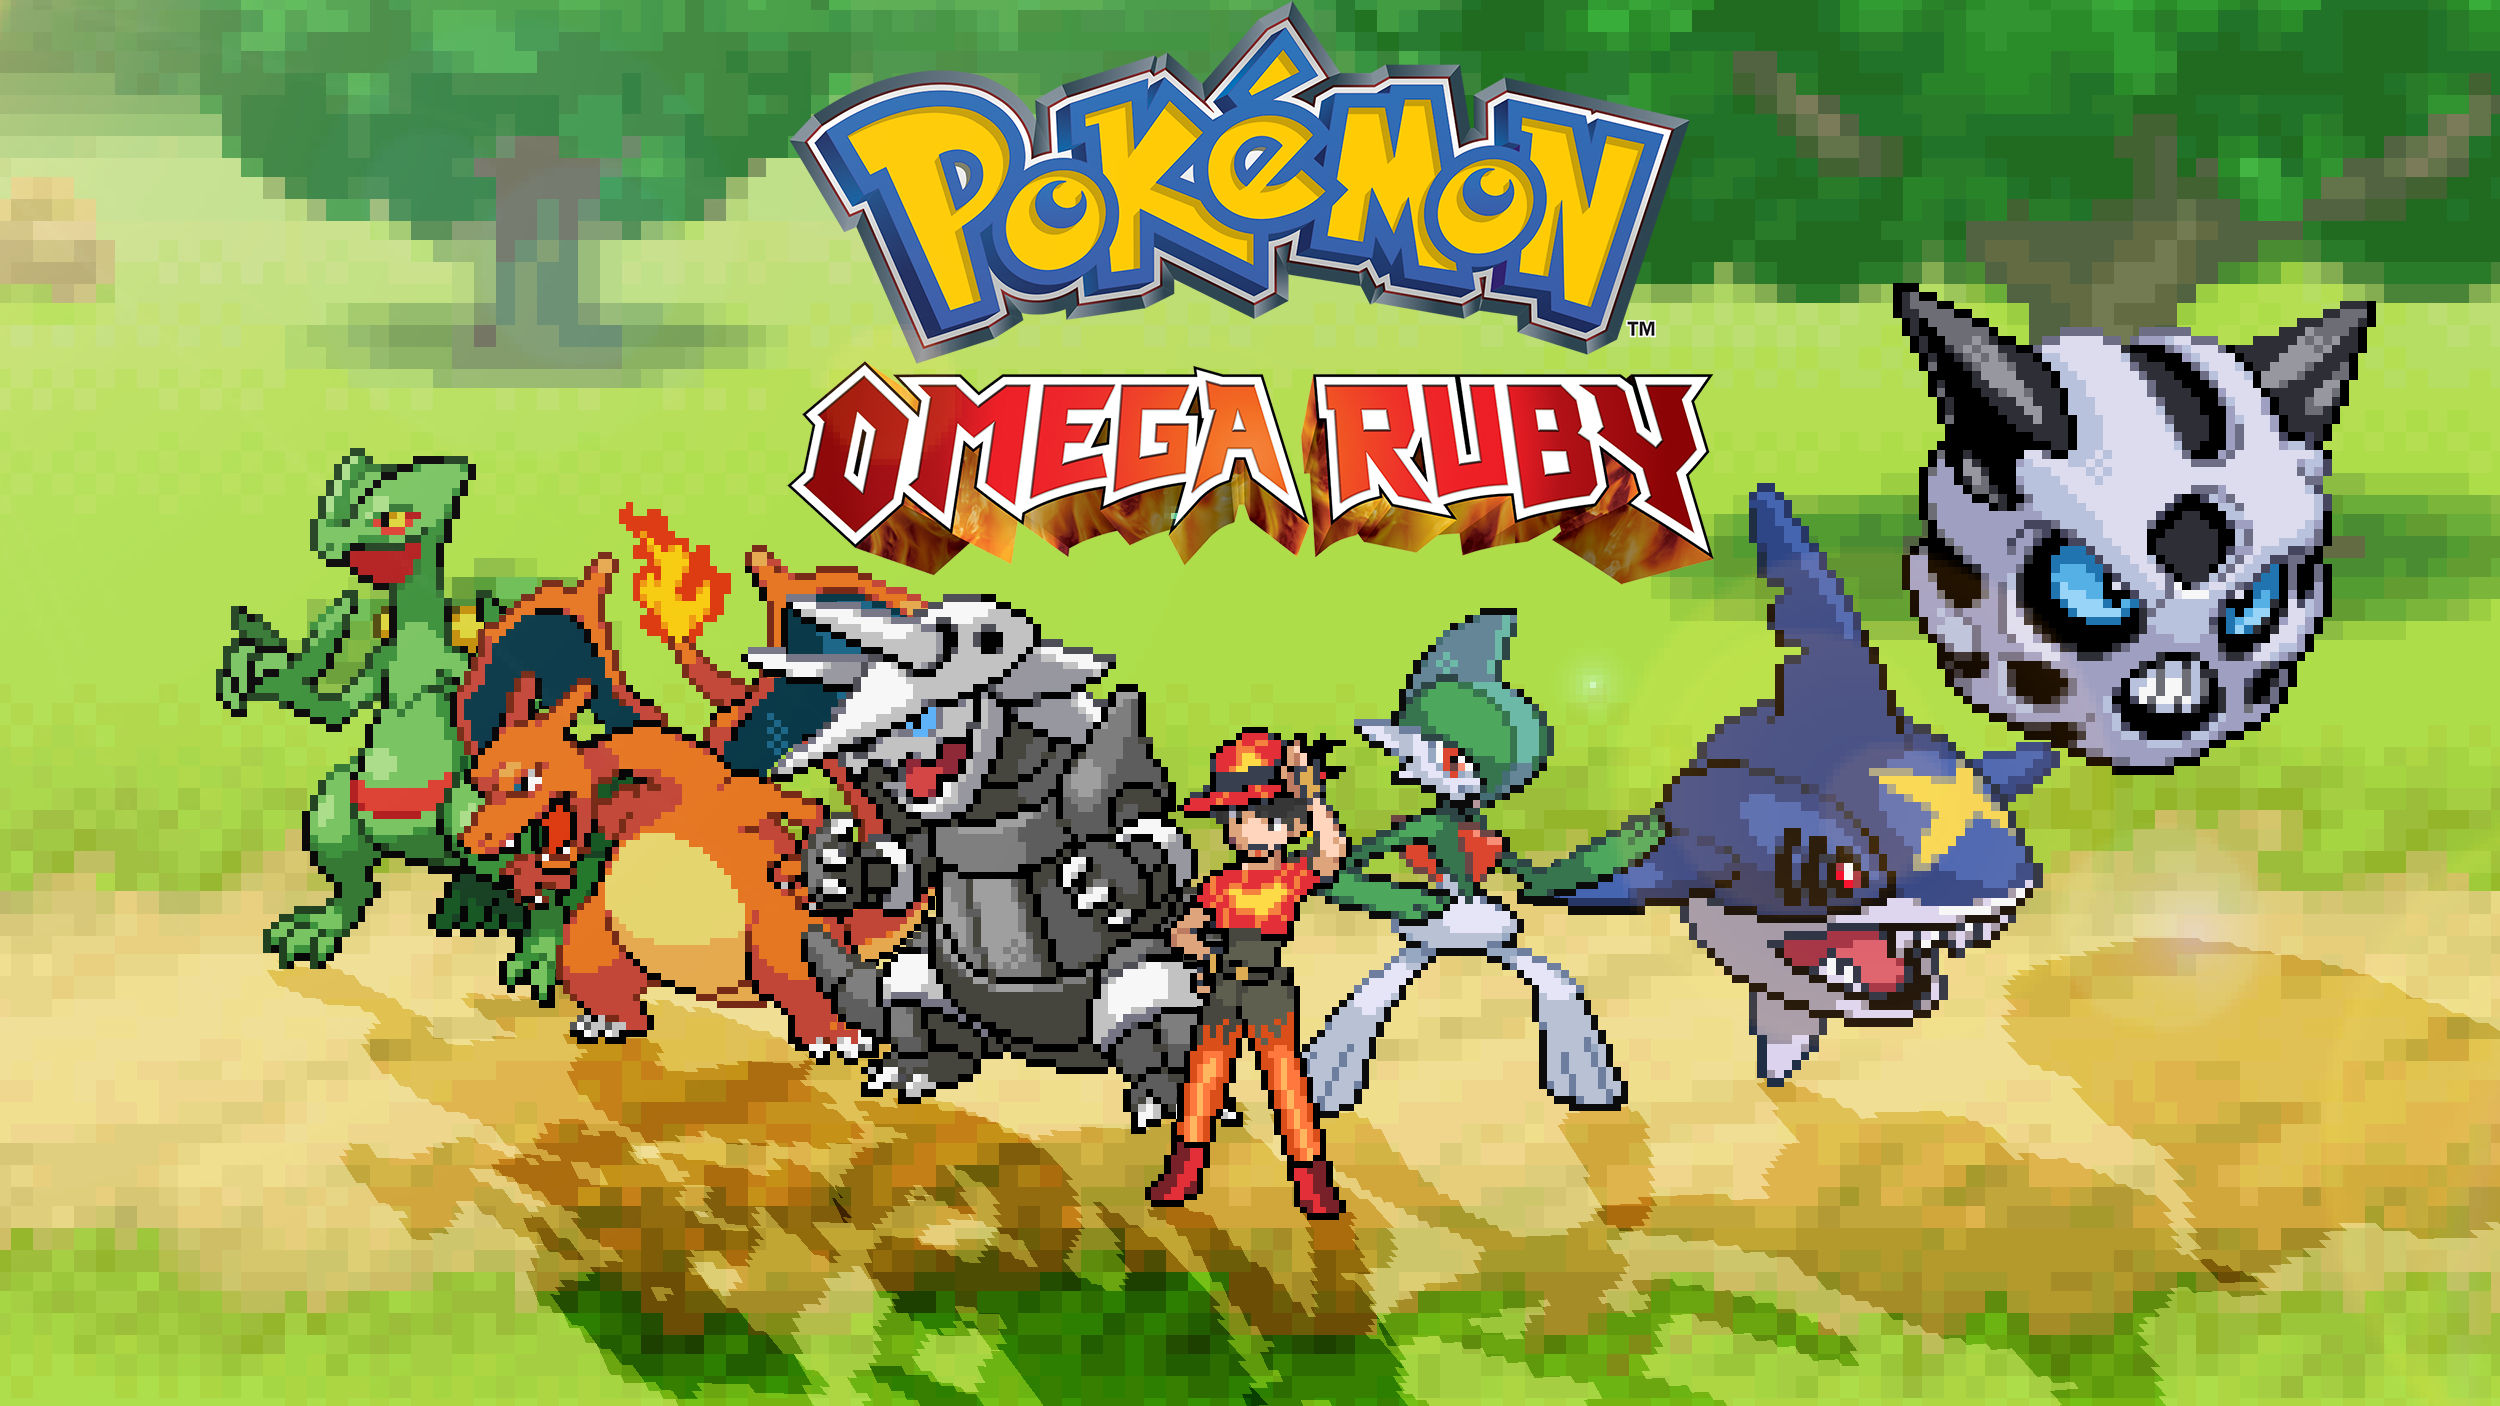 Pokemon Omega Ruby team by scott910 on DeviantArt